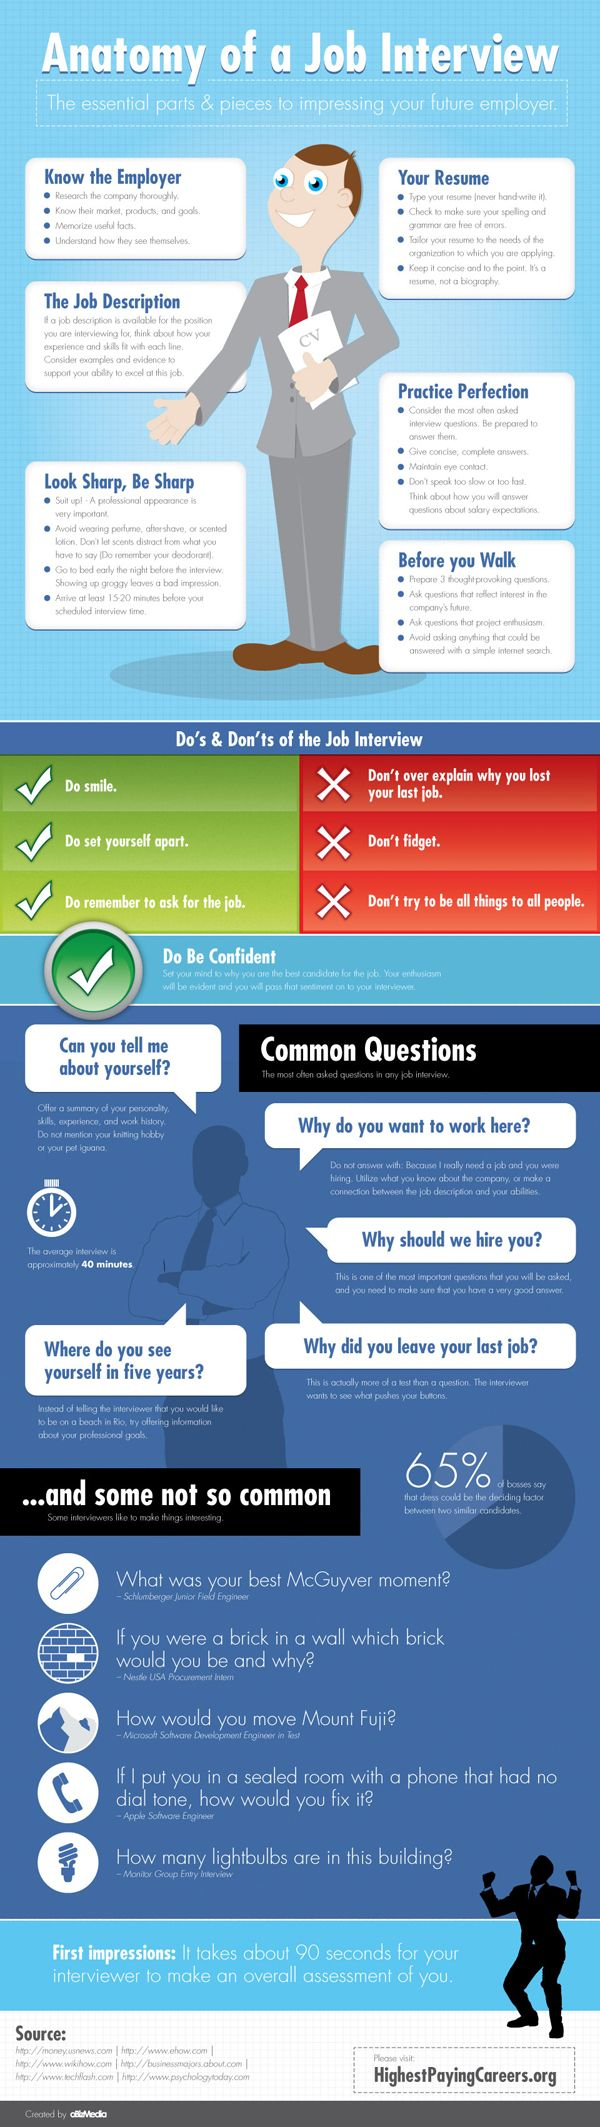 Anatomy of a Job #Interview | Infographic | #careeradvice #jobsearch